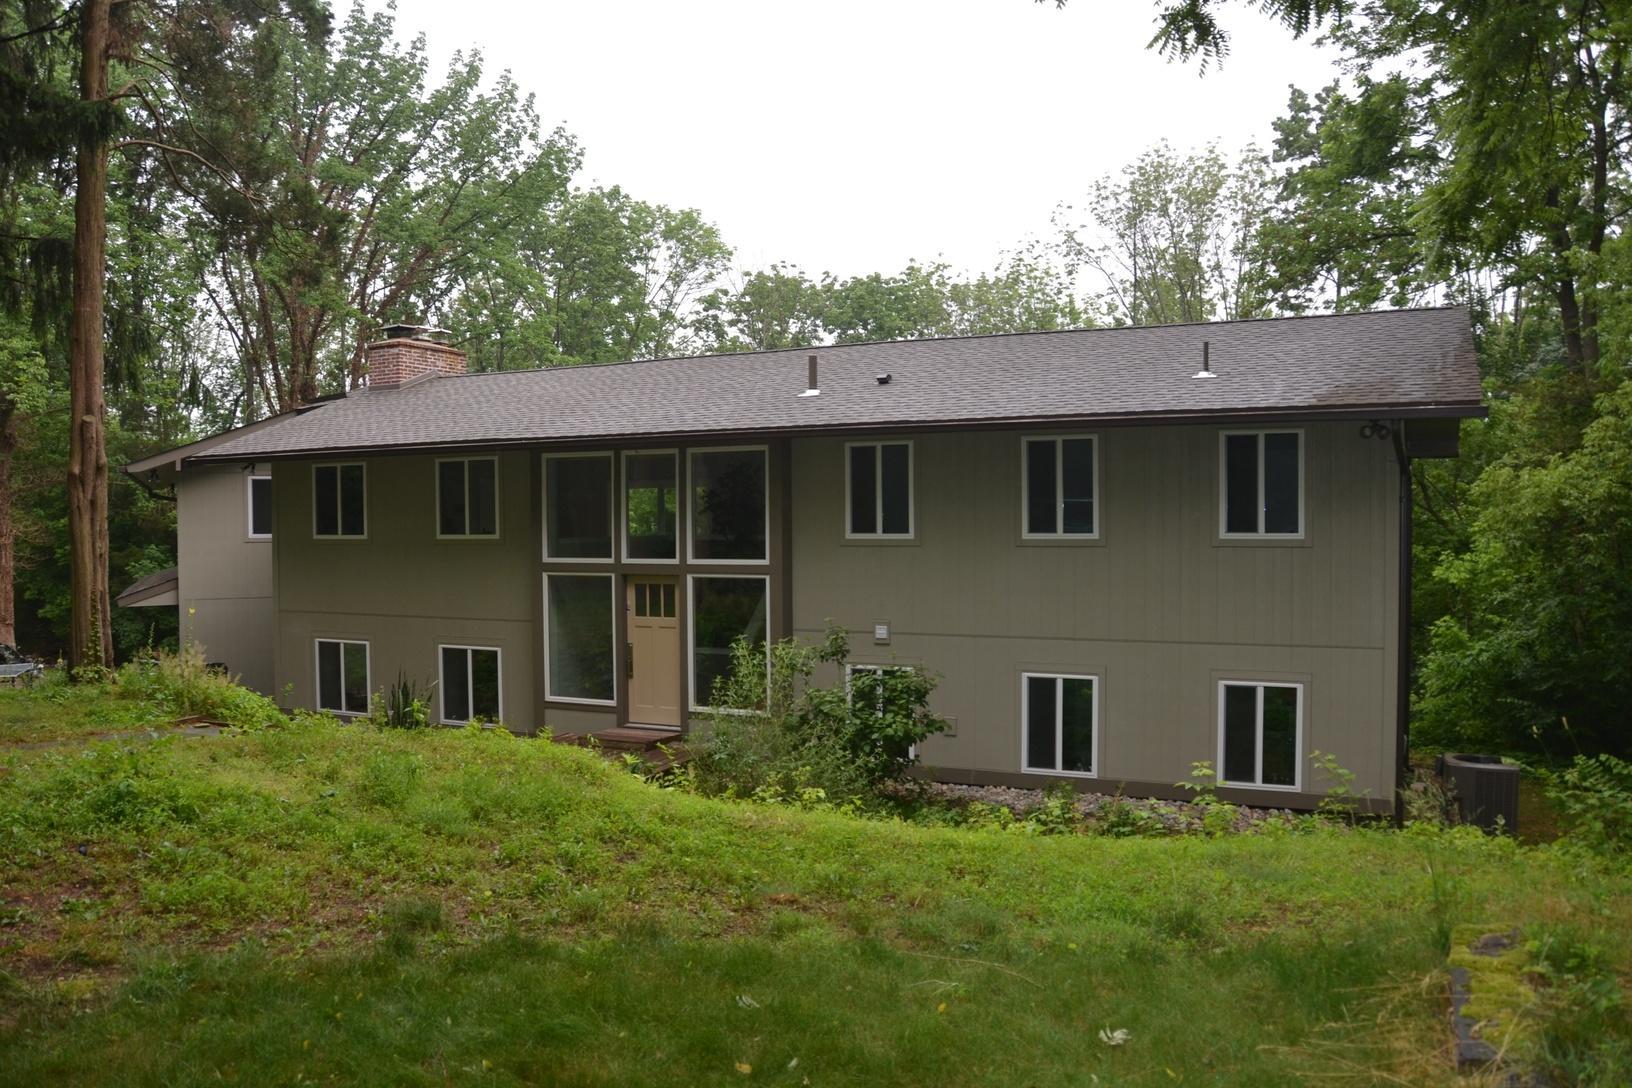 Siding Replacement in Malvern, PA